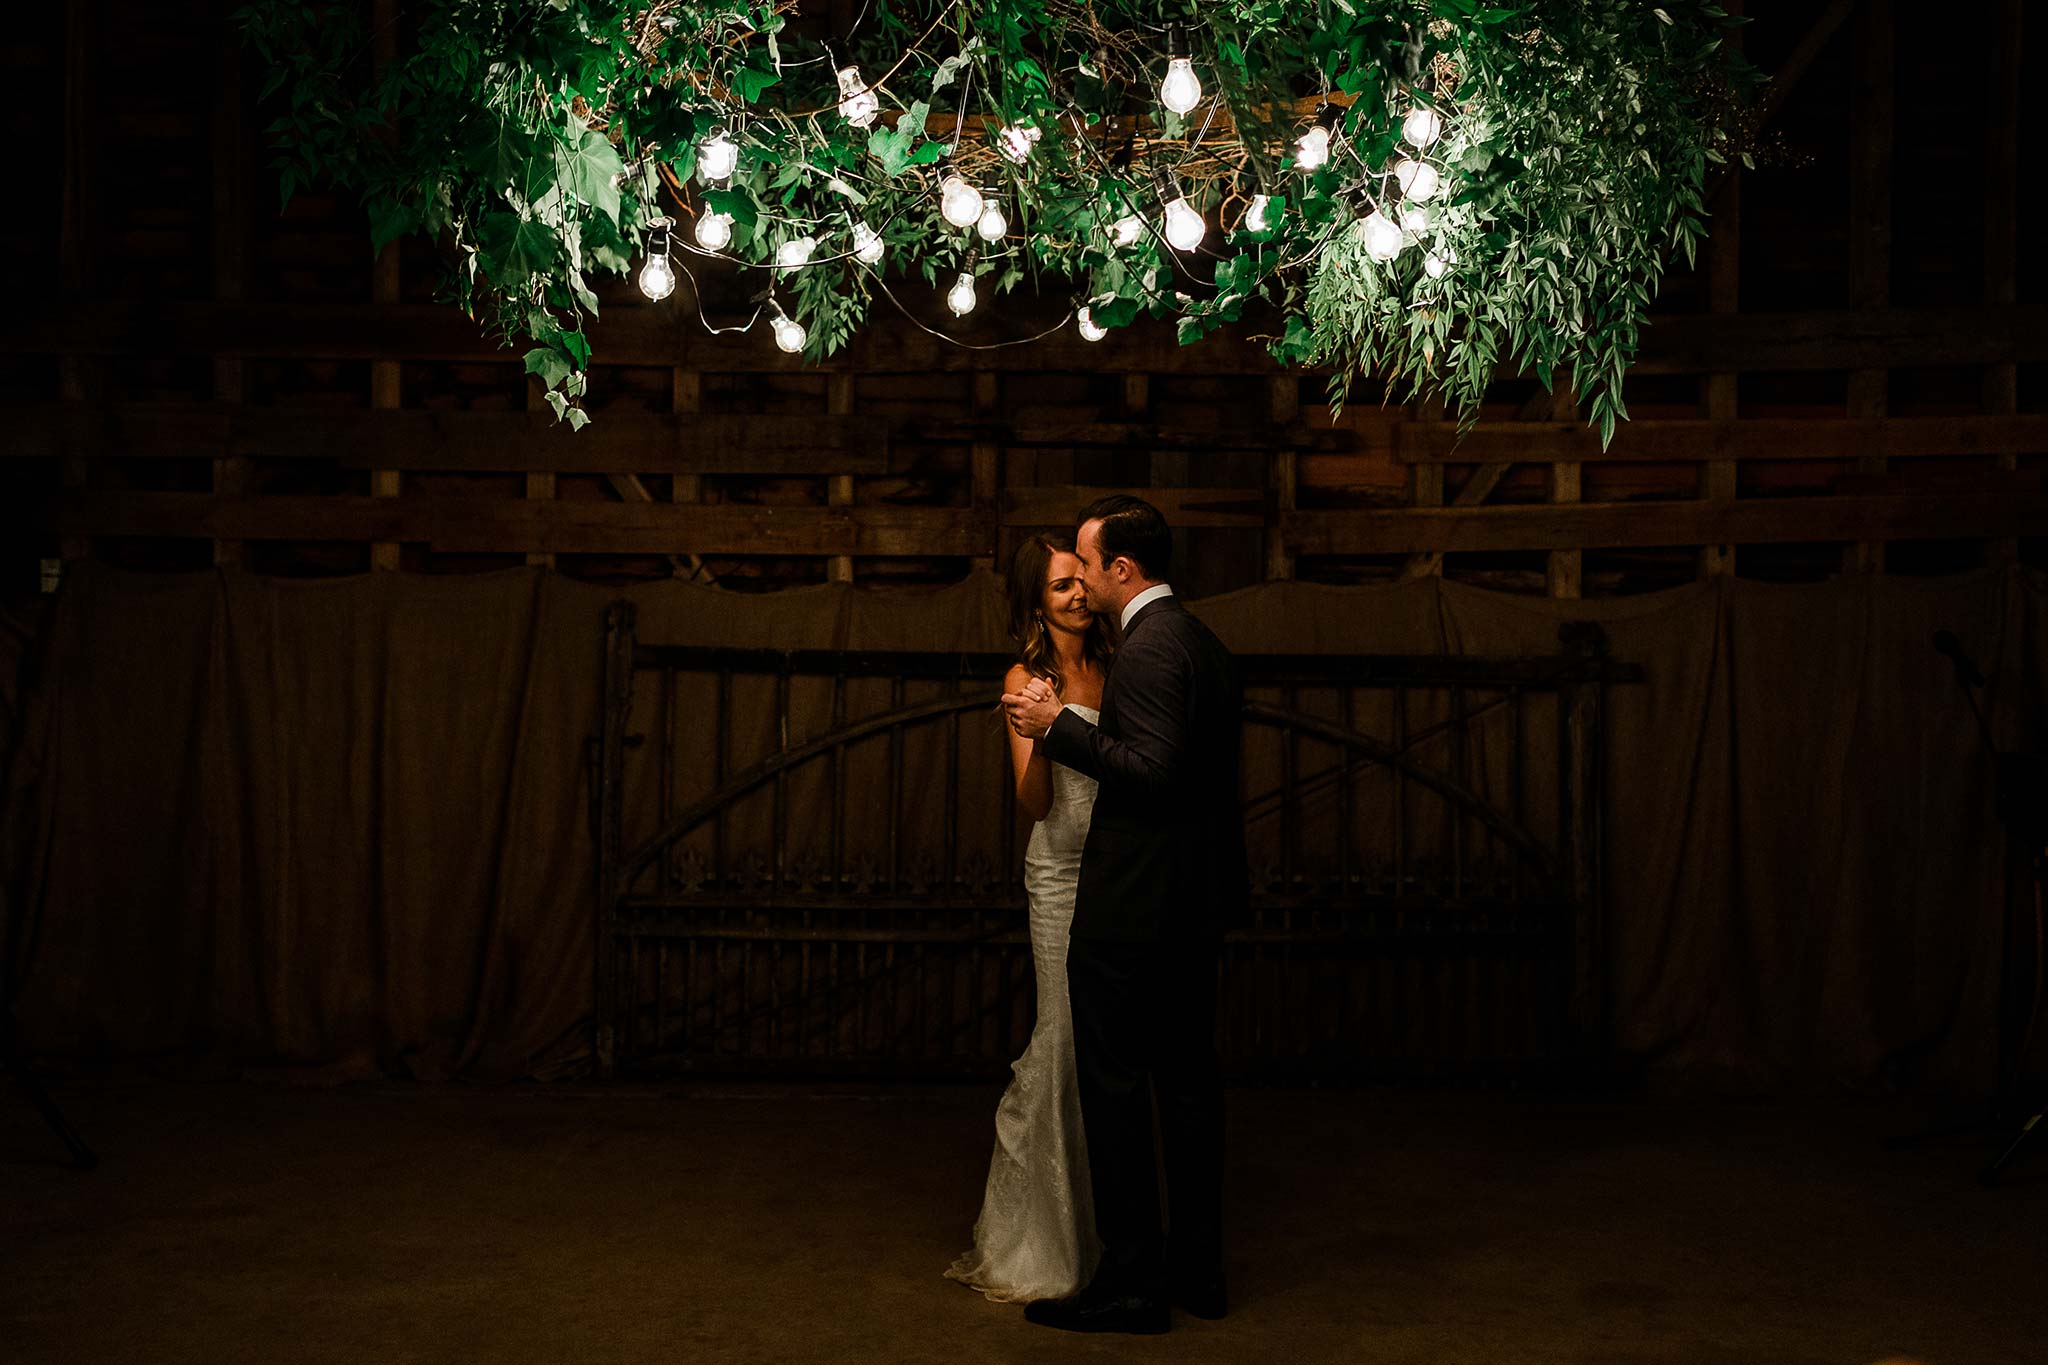 First dance under the custom made foliage chandelier